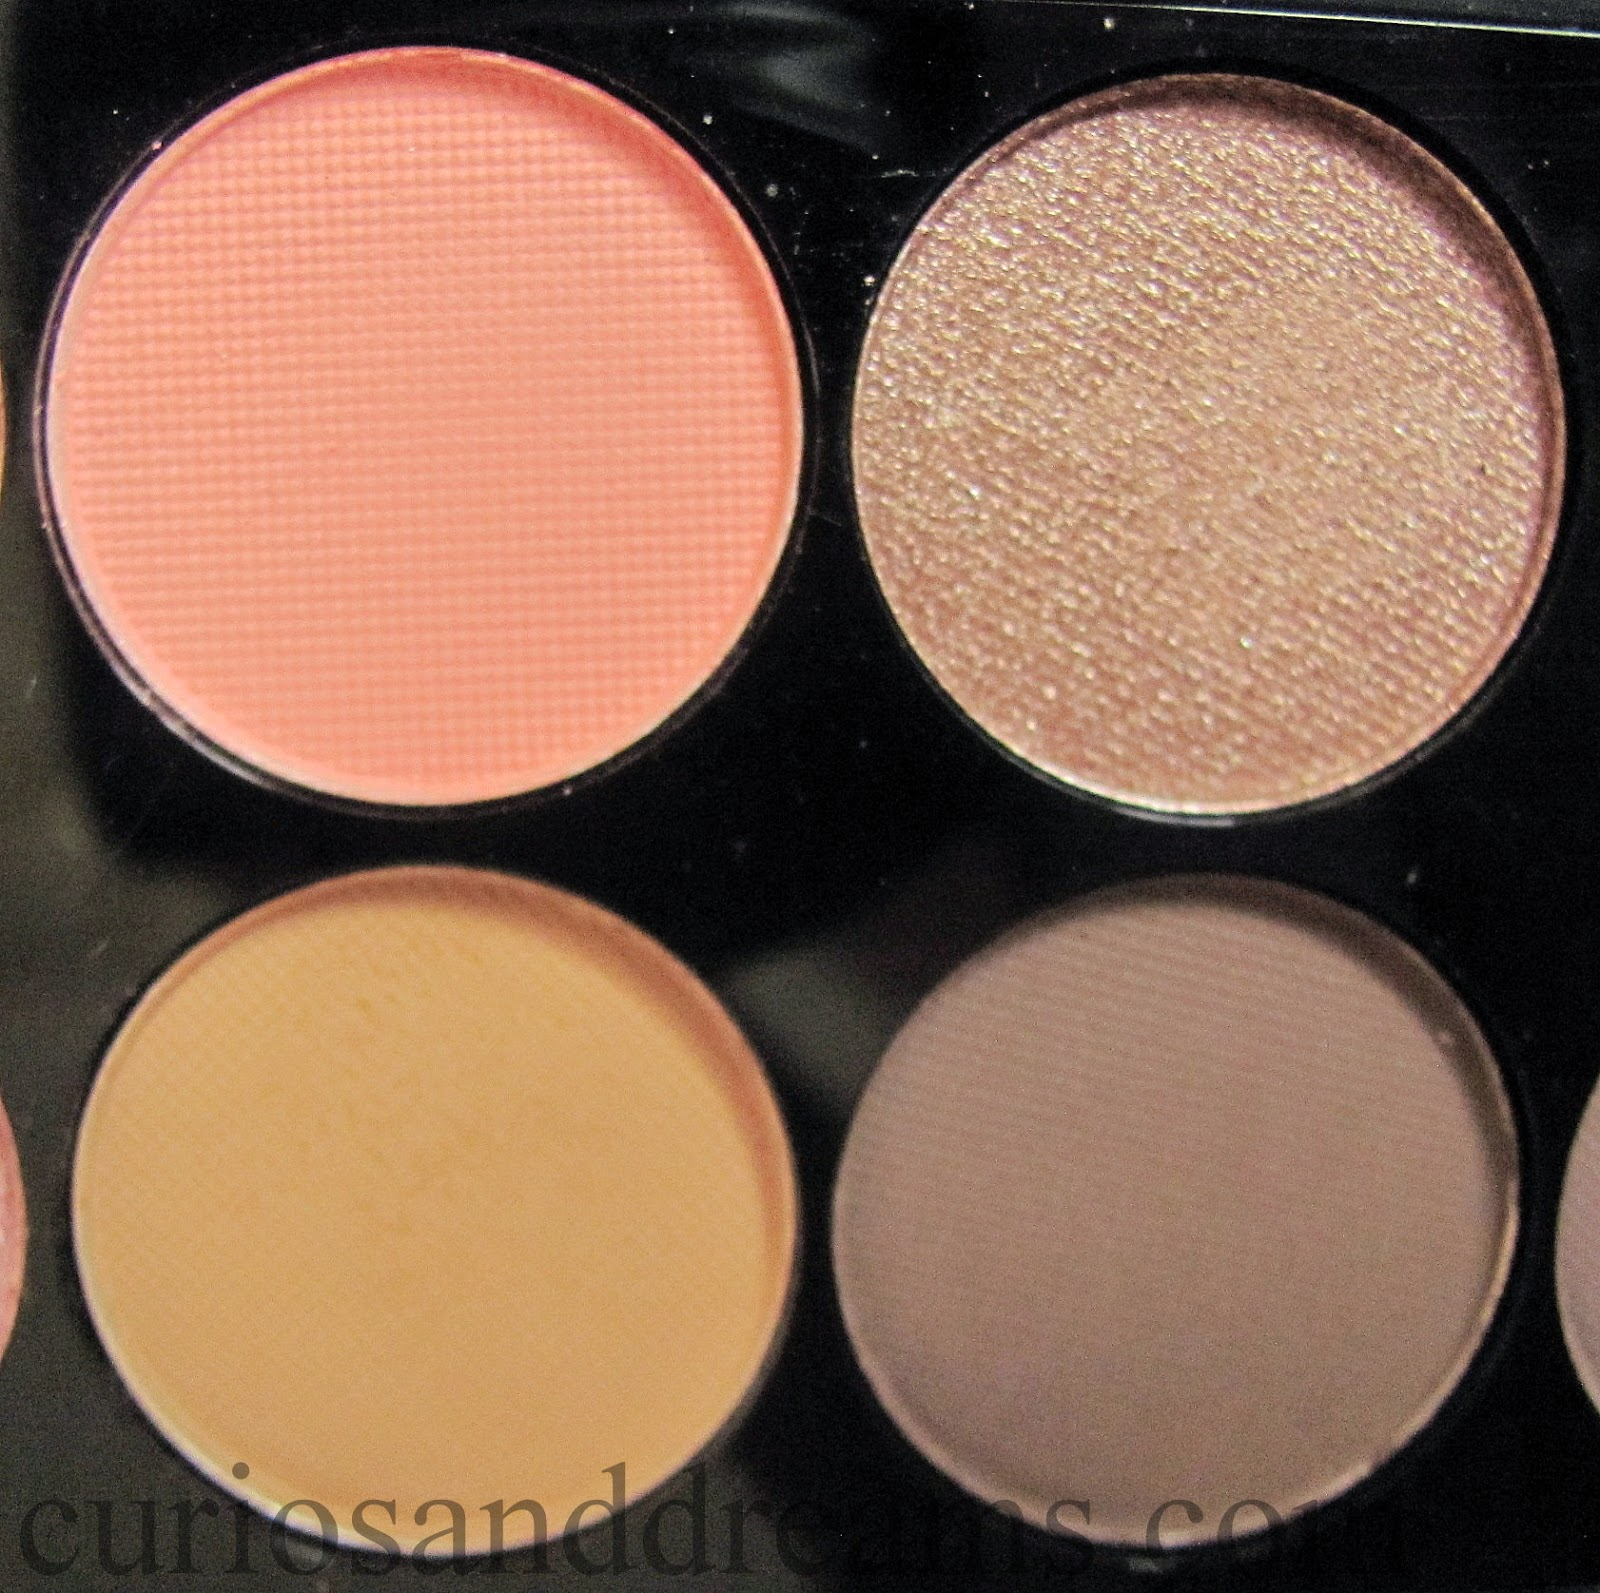 Sleek Oh So Special Eyeshadow Palette review